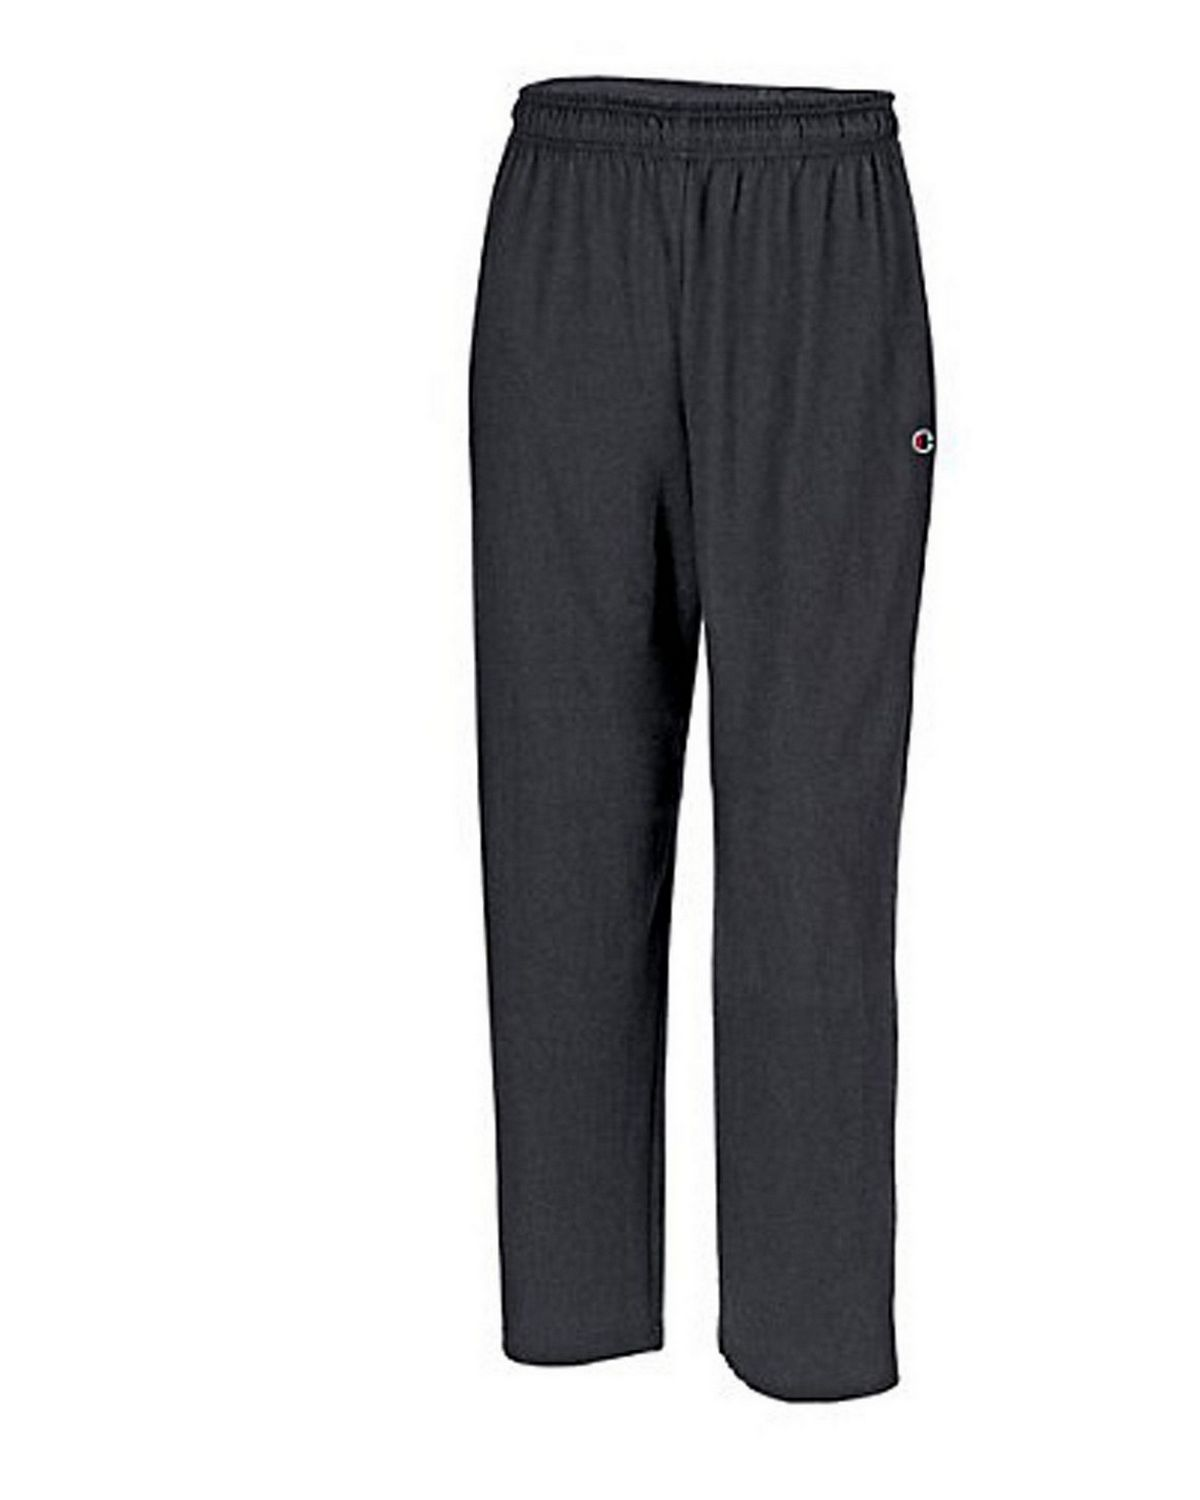 Champion P7309 Authentic Mens Open Bottom Jersey Pants - Granite Heather - XXL P7309